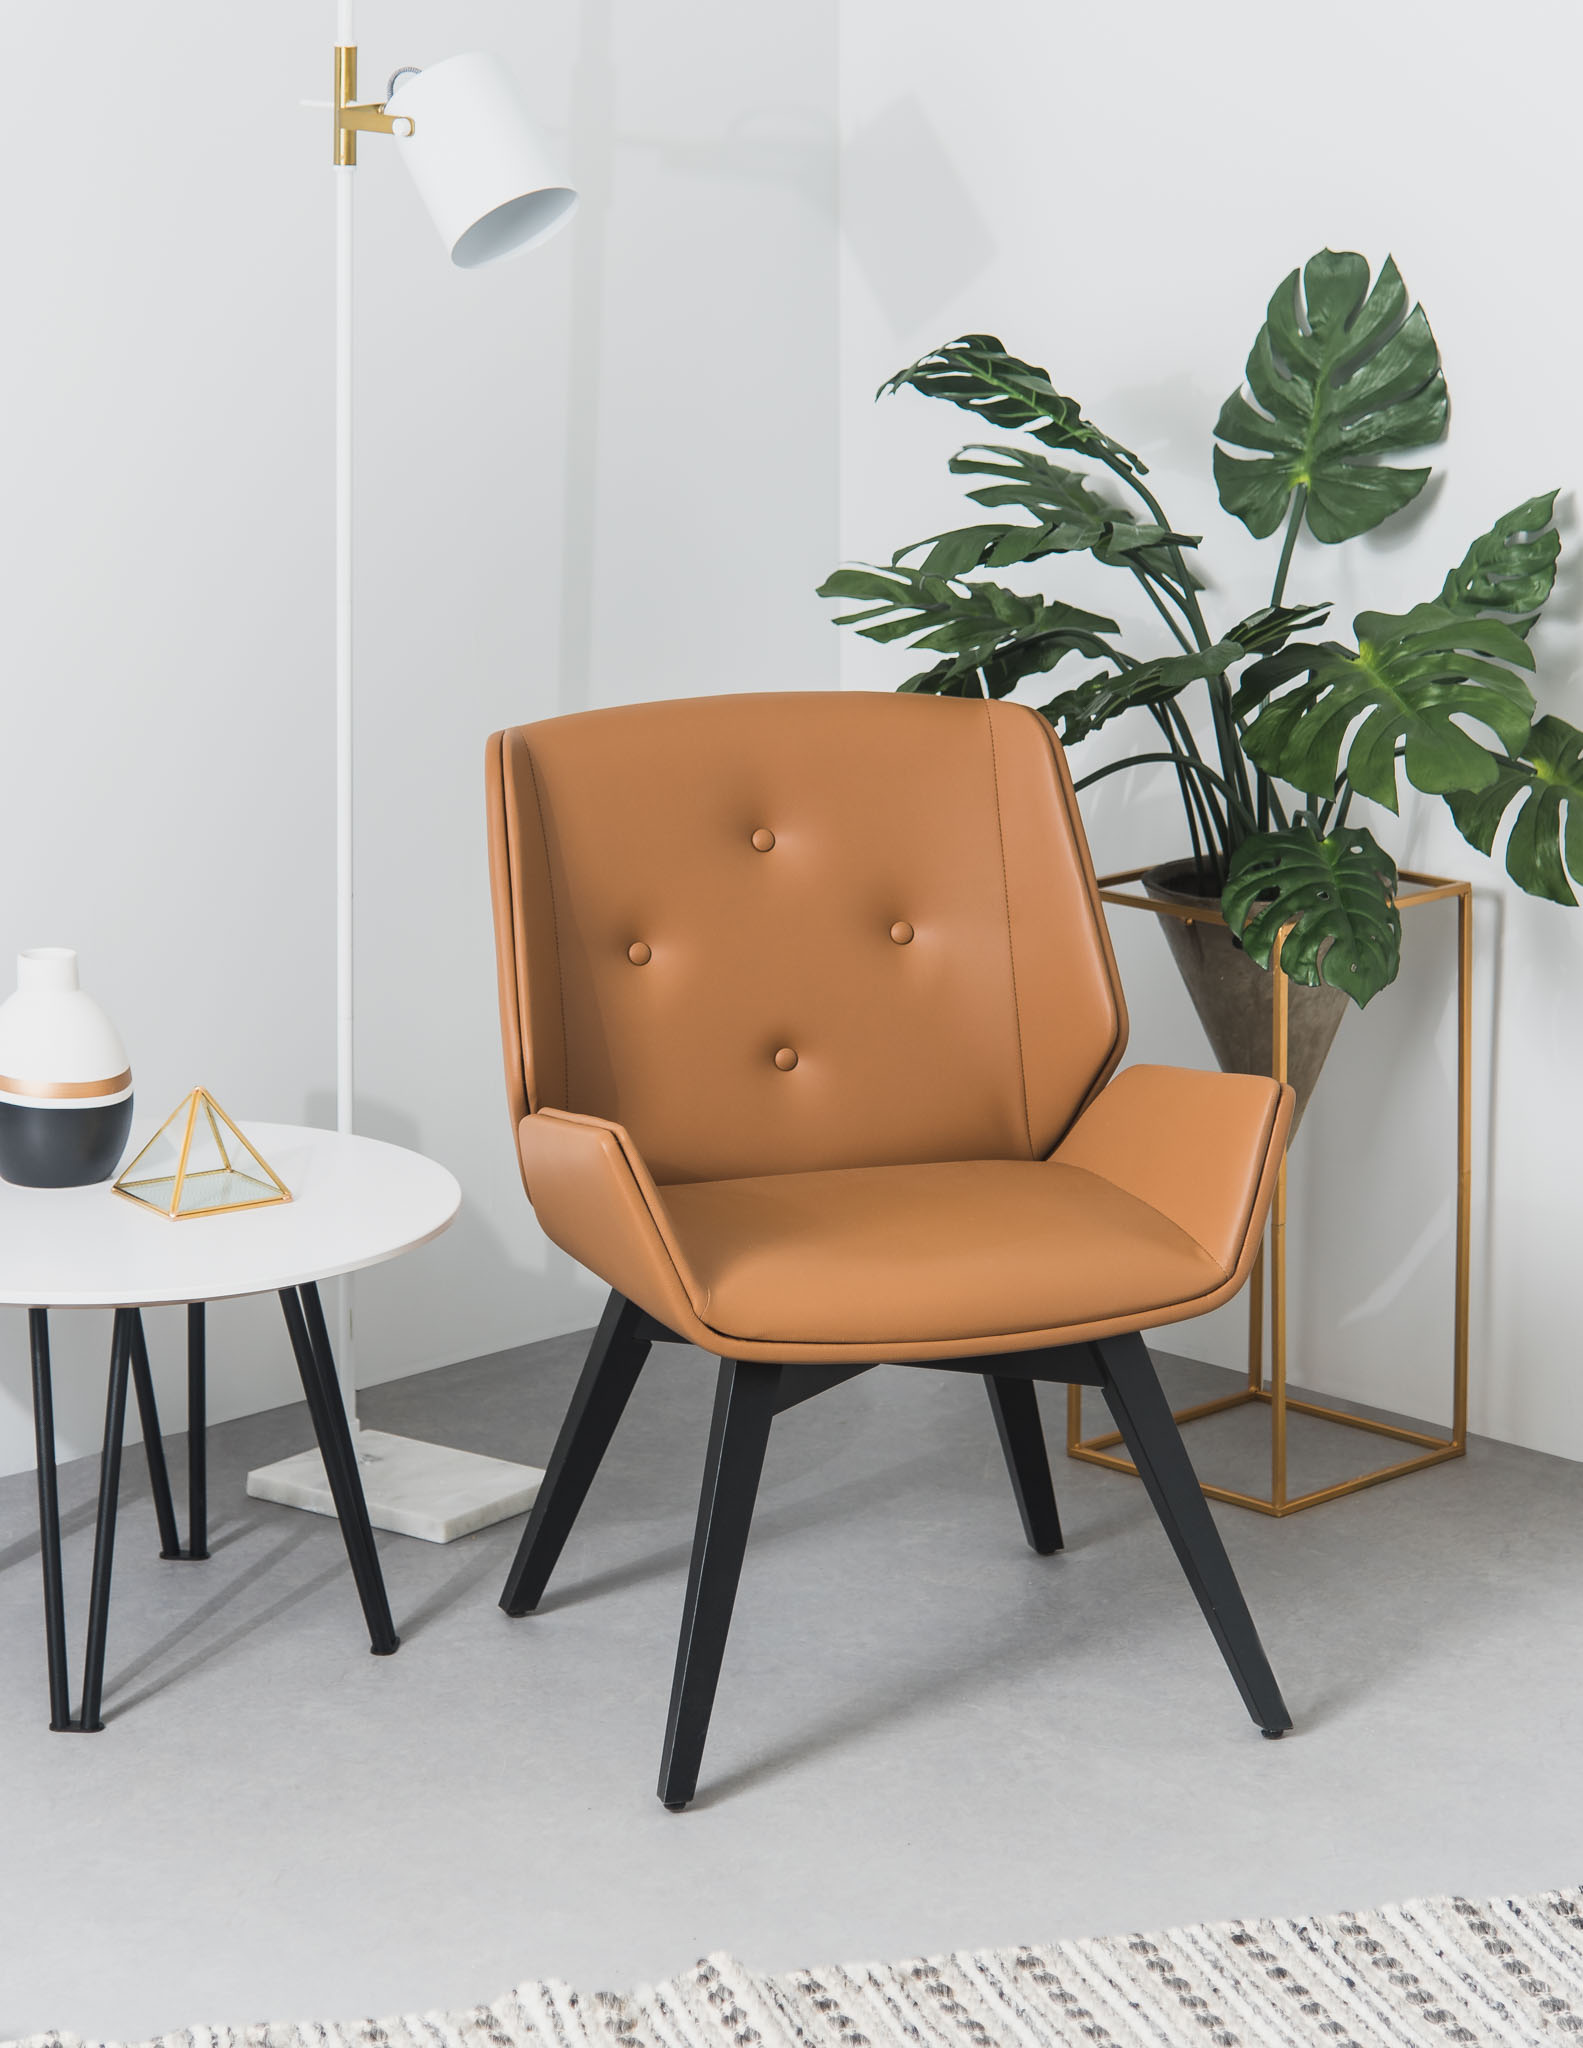 Lounge Chair Ema 1 2018 Rouillard